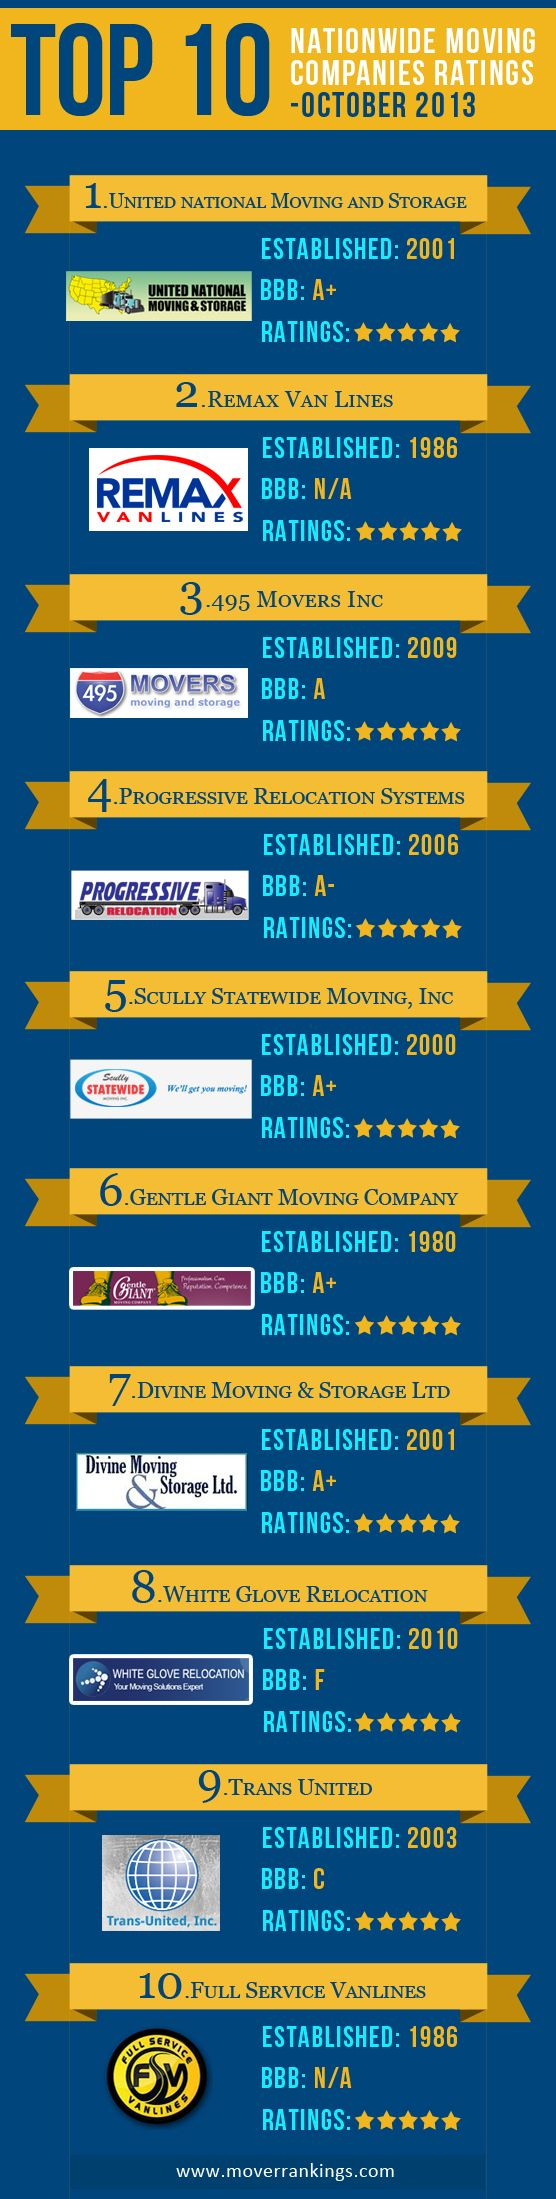 The Nationalwide best moving company for October 2013 is here at mover rankings. Based on the customer ratings, reviews and credentials top moving companies are identified and it helps you to narrow down your search for the best moving company.